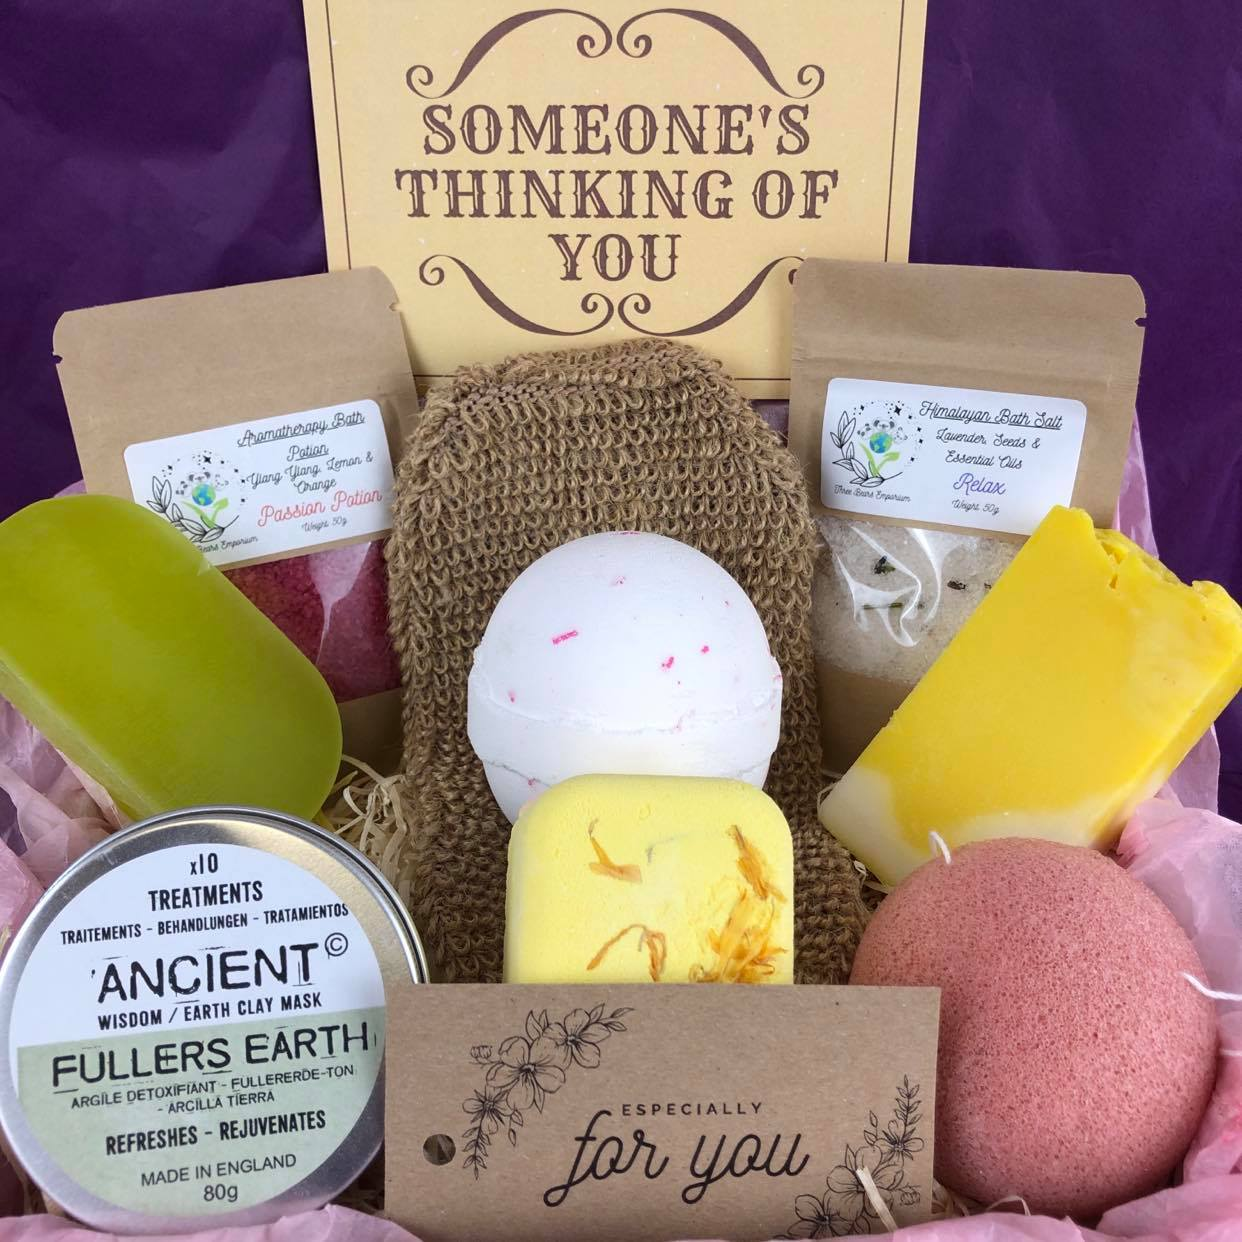 All-in-One Facial, Bath & Shower Gift Set